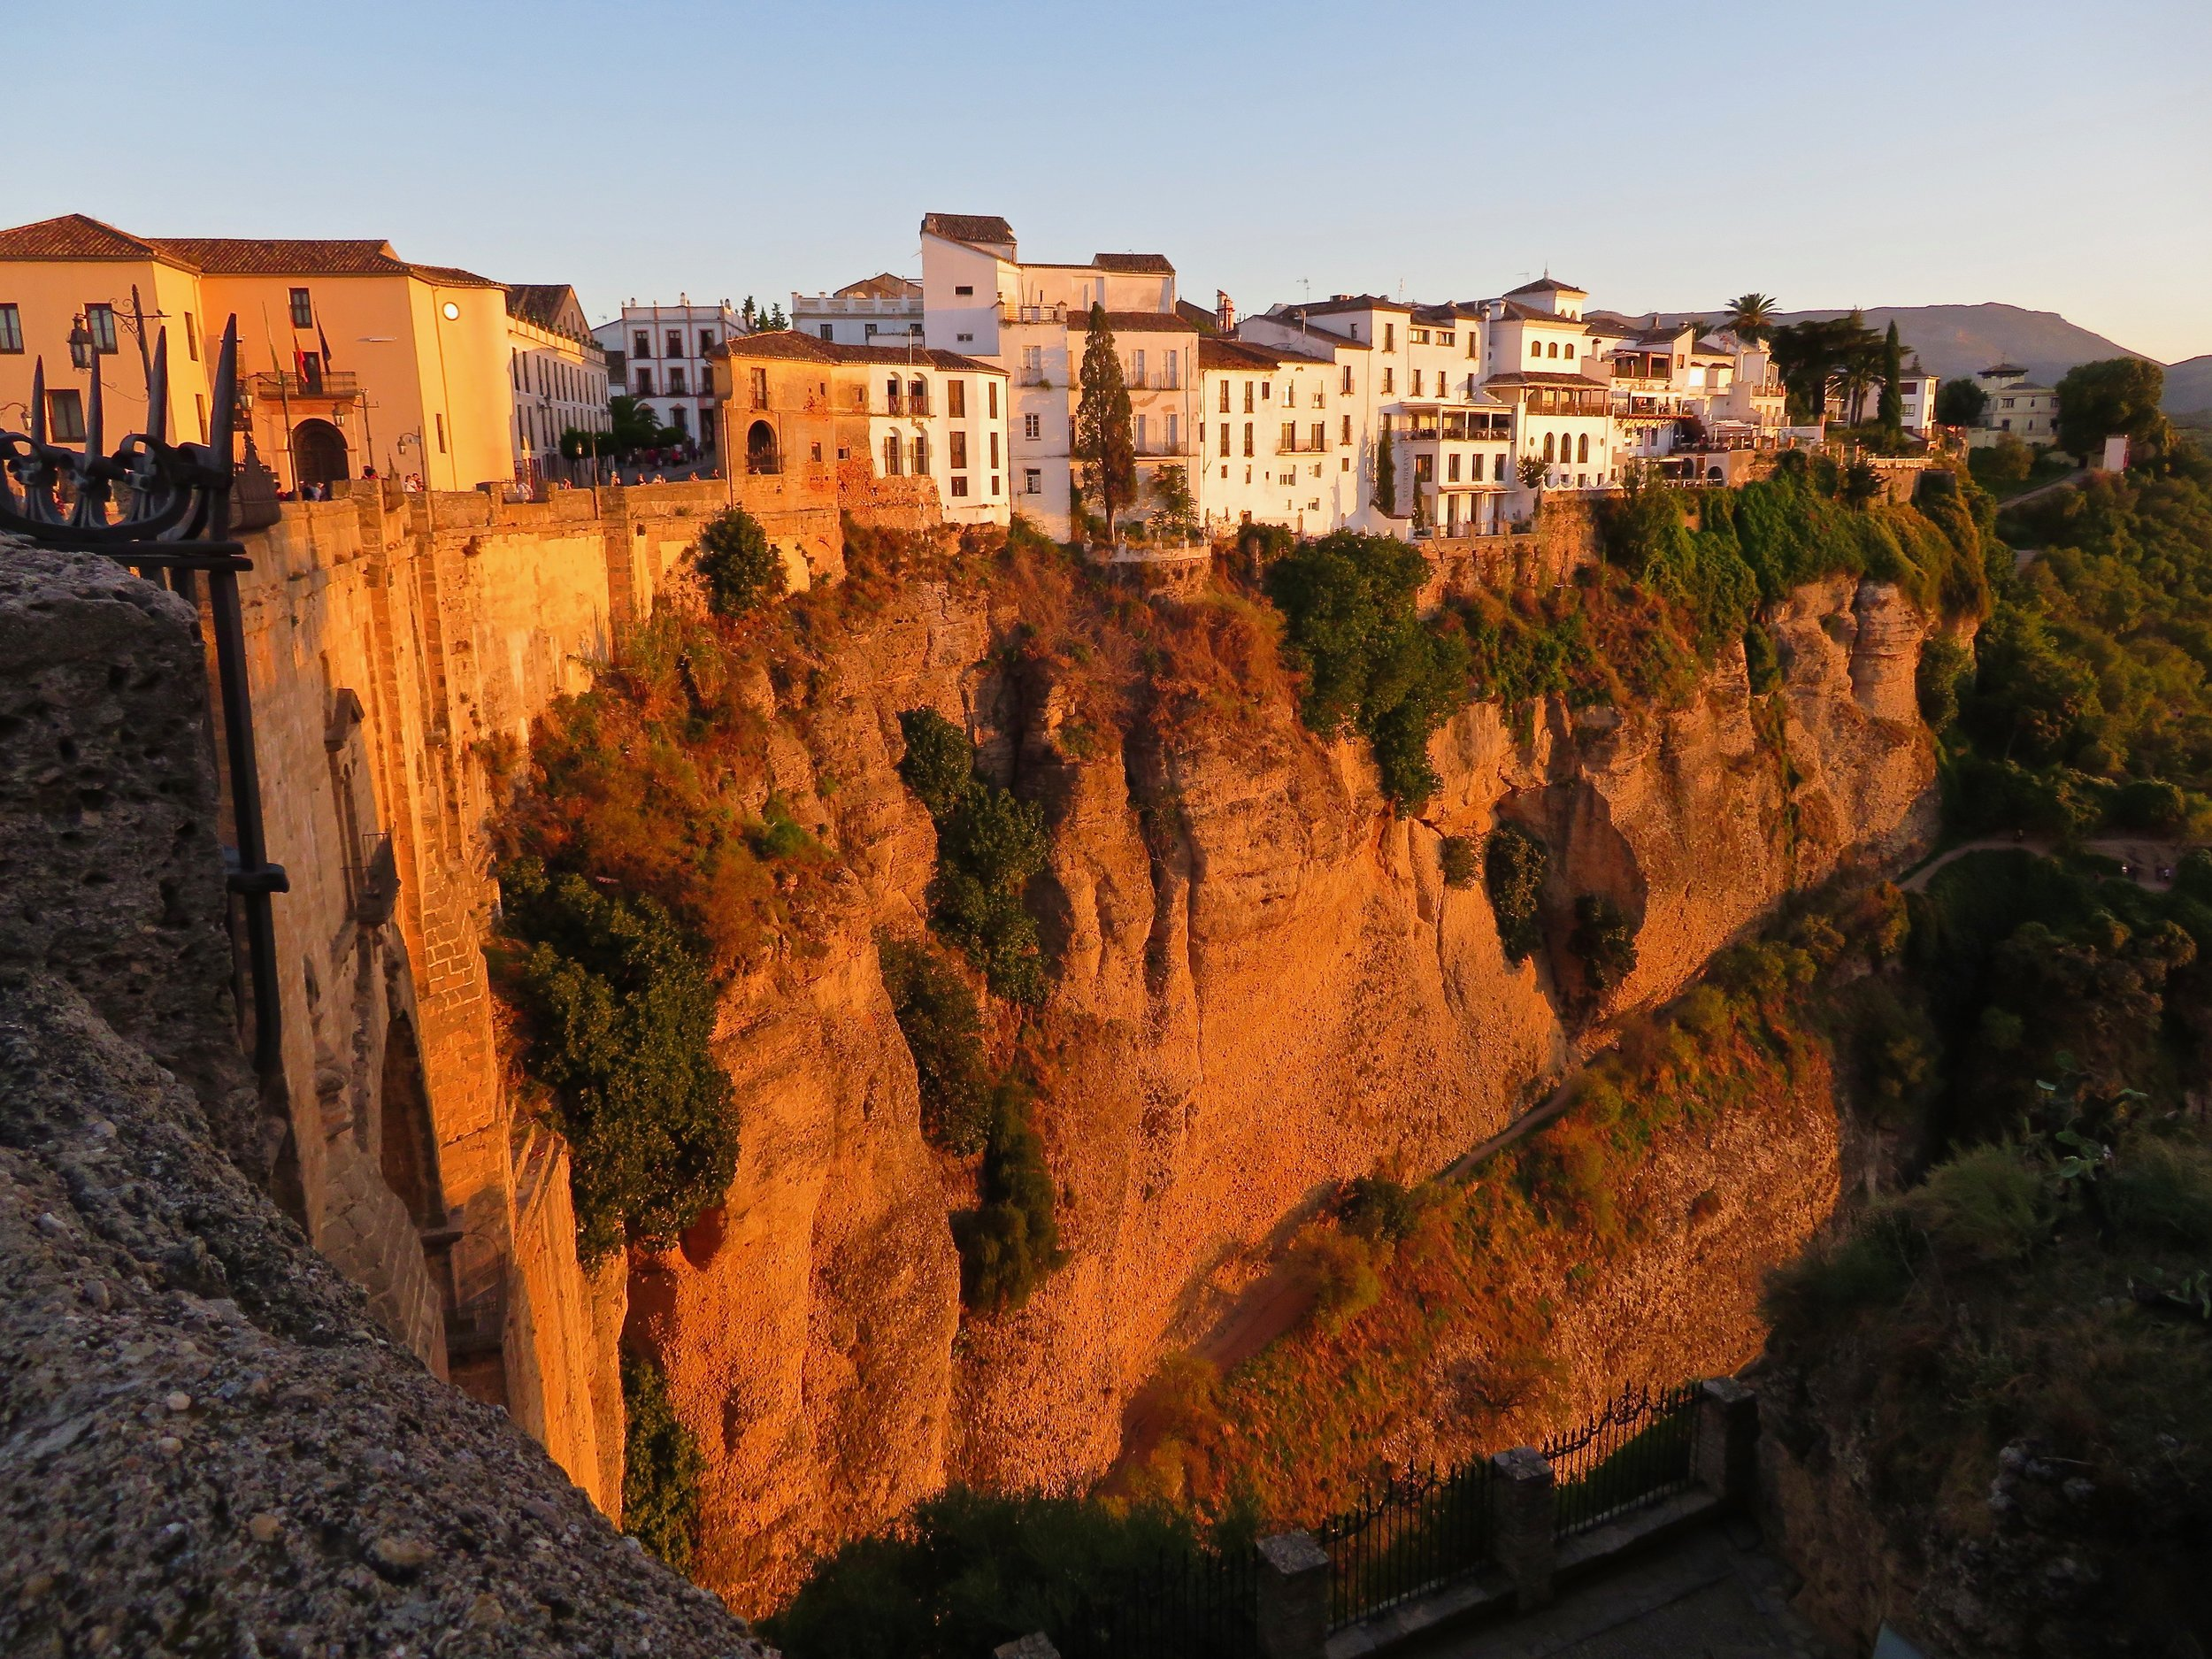 Spectacular Ronda, sliced in two by the El Tajo Gorge!